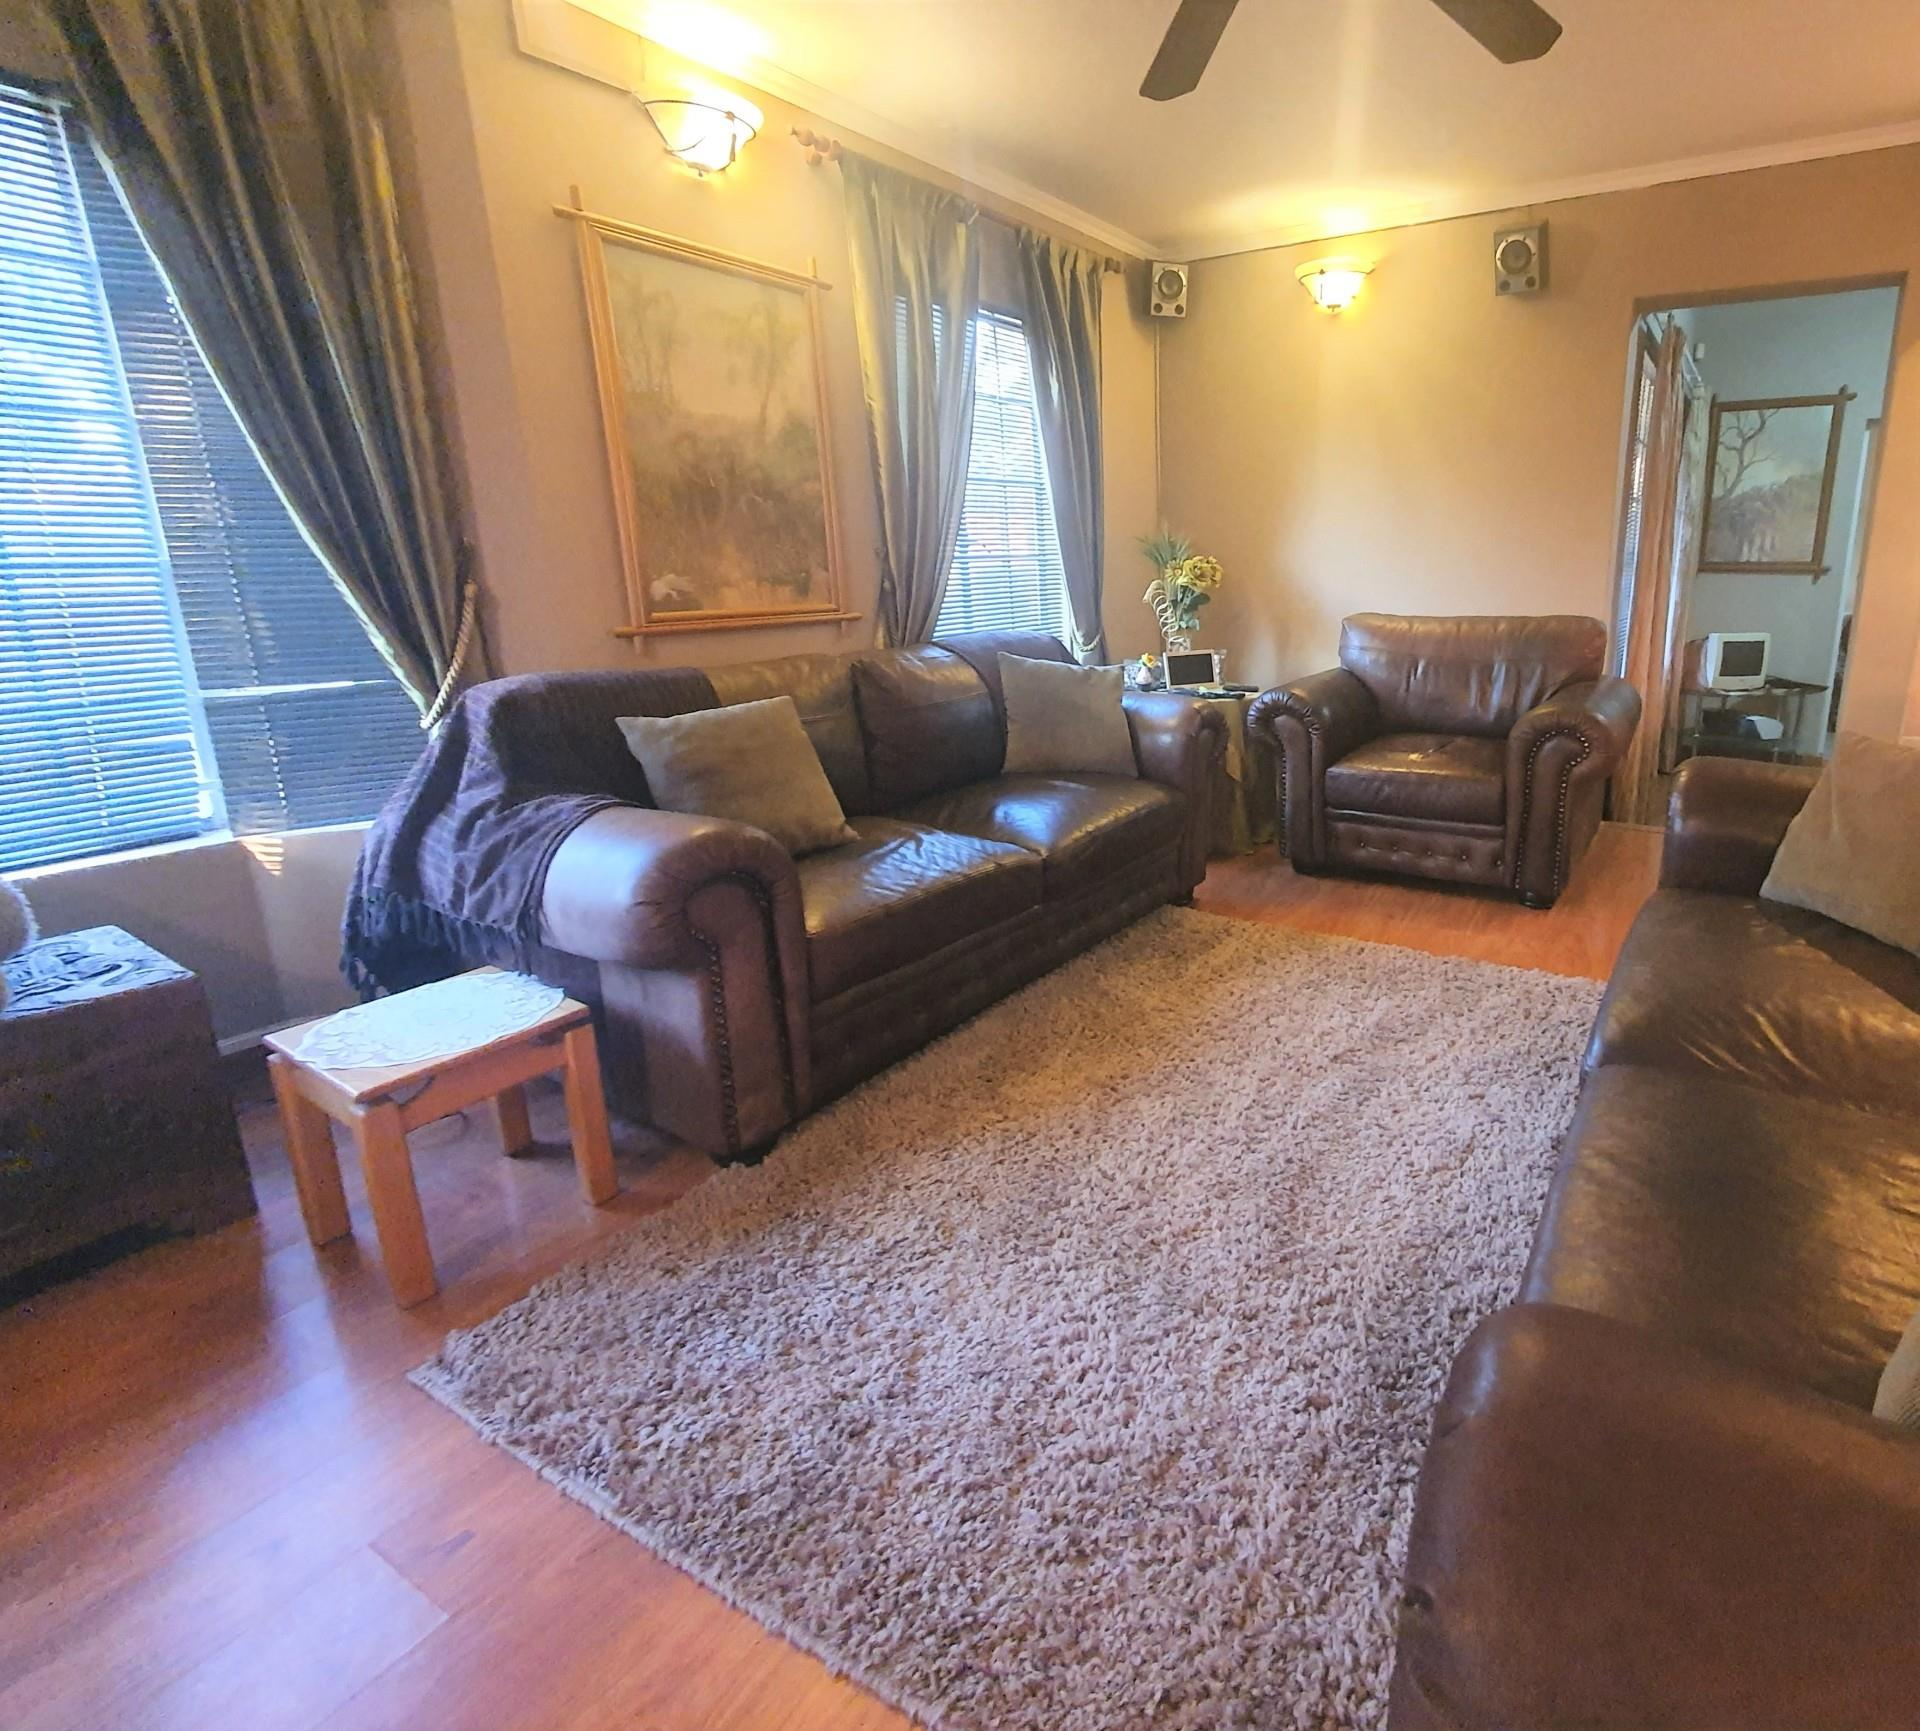 3 Bedroom House For Sale in Wingate Park